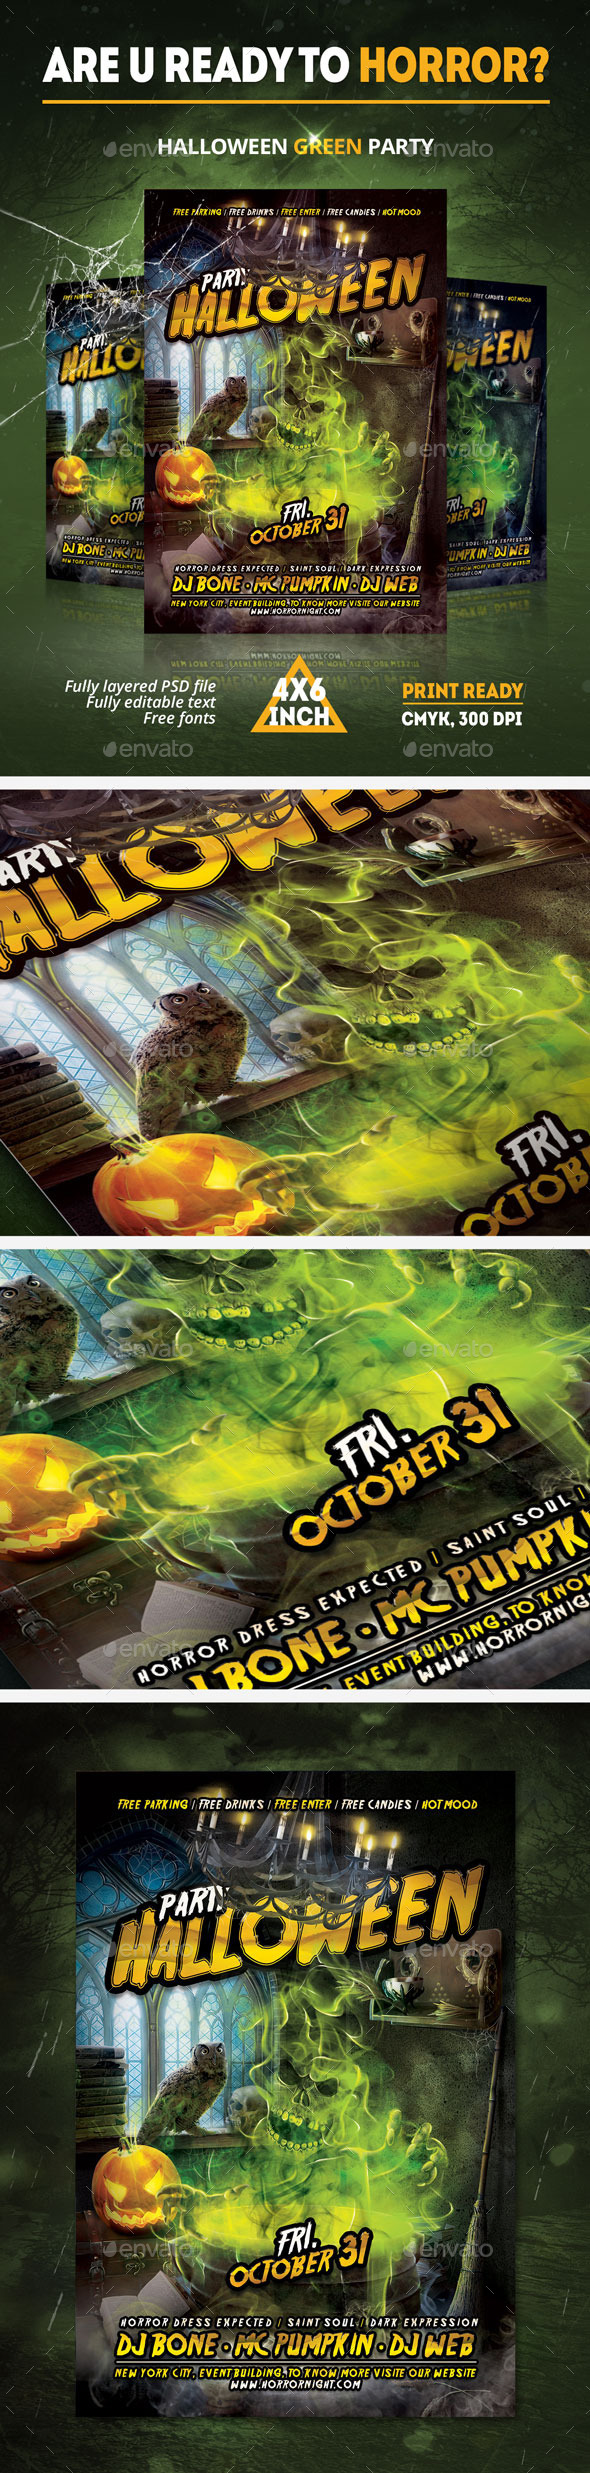 Halloween Green paty Flyer